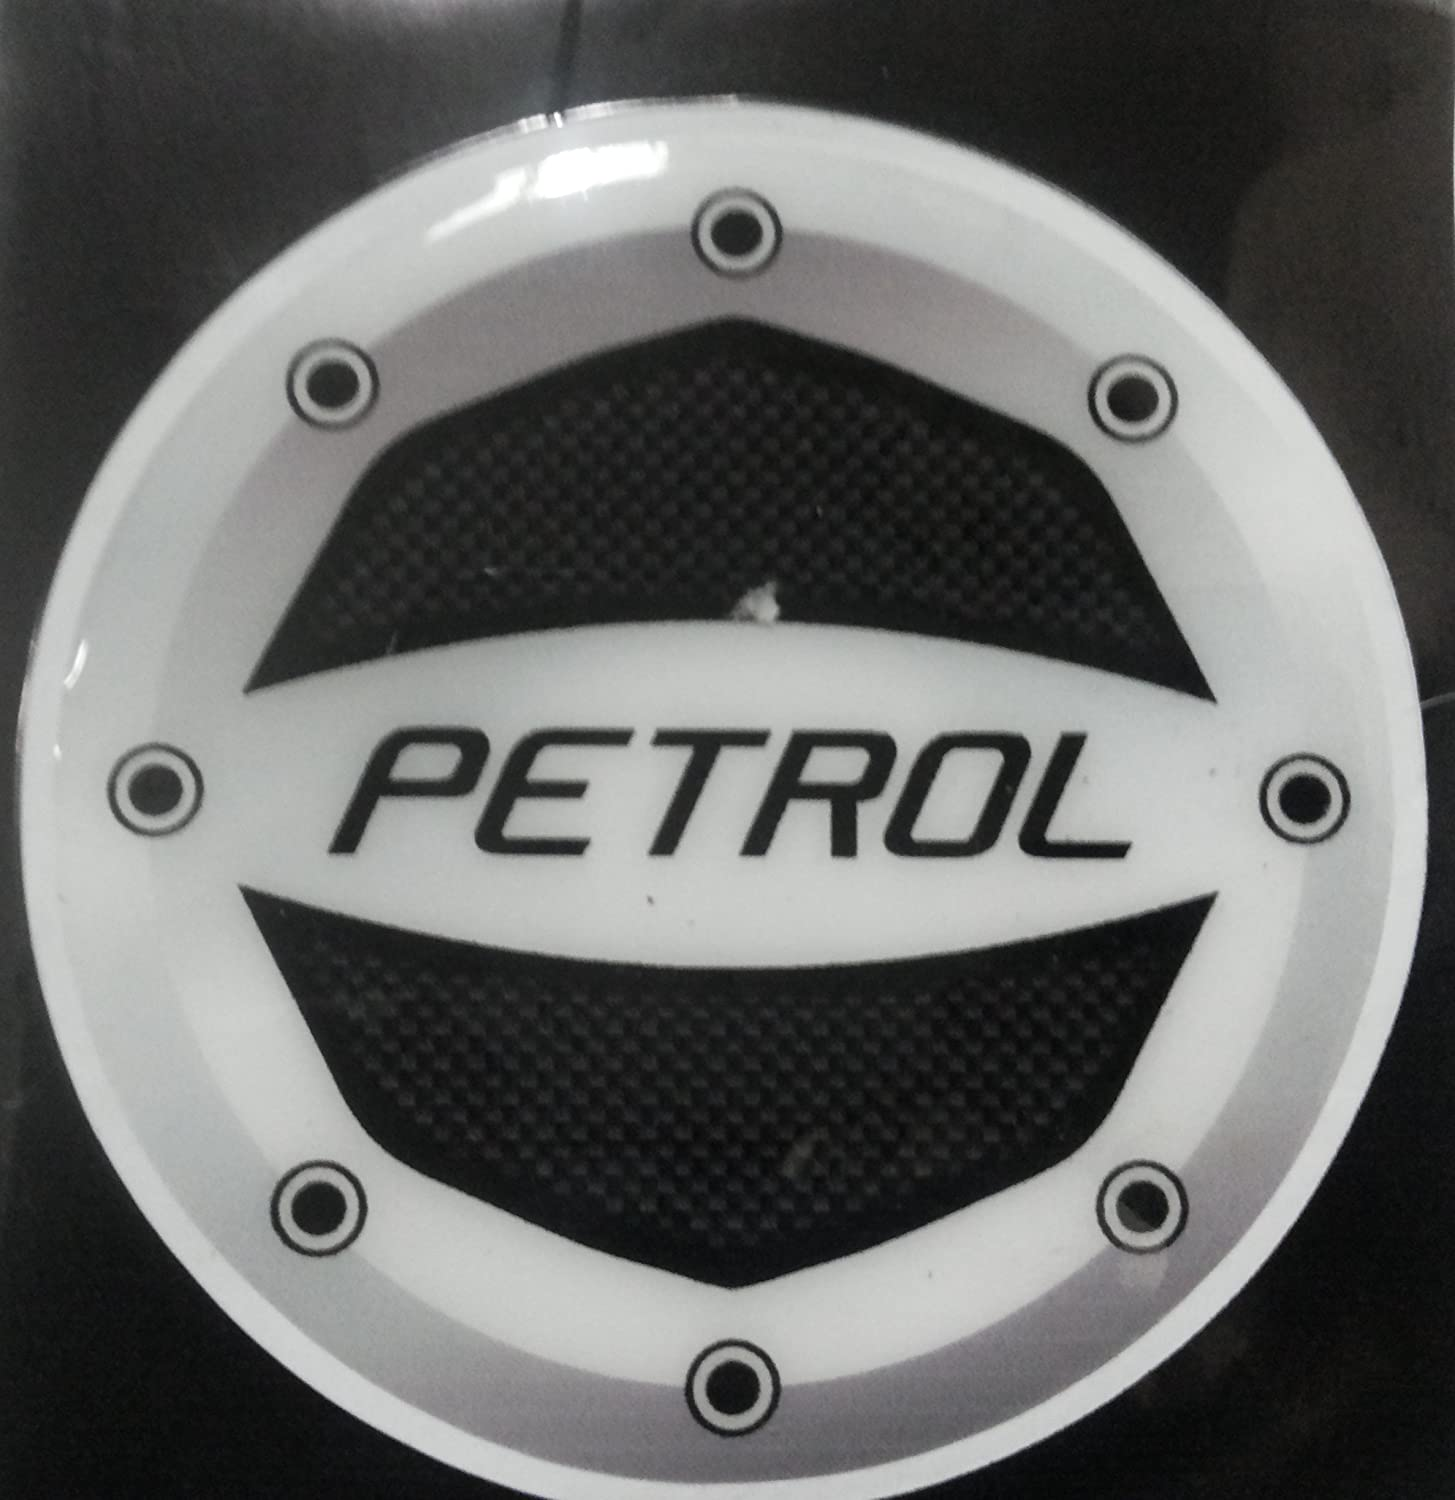 Leebo reflective black petrol inside decal sticker for maruti suzuki wagon r stingray amazon in car motorbike